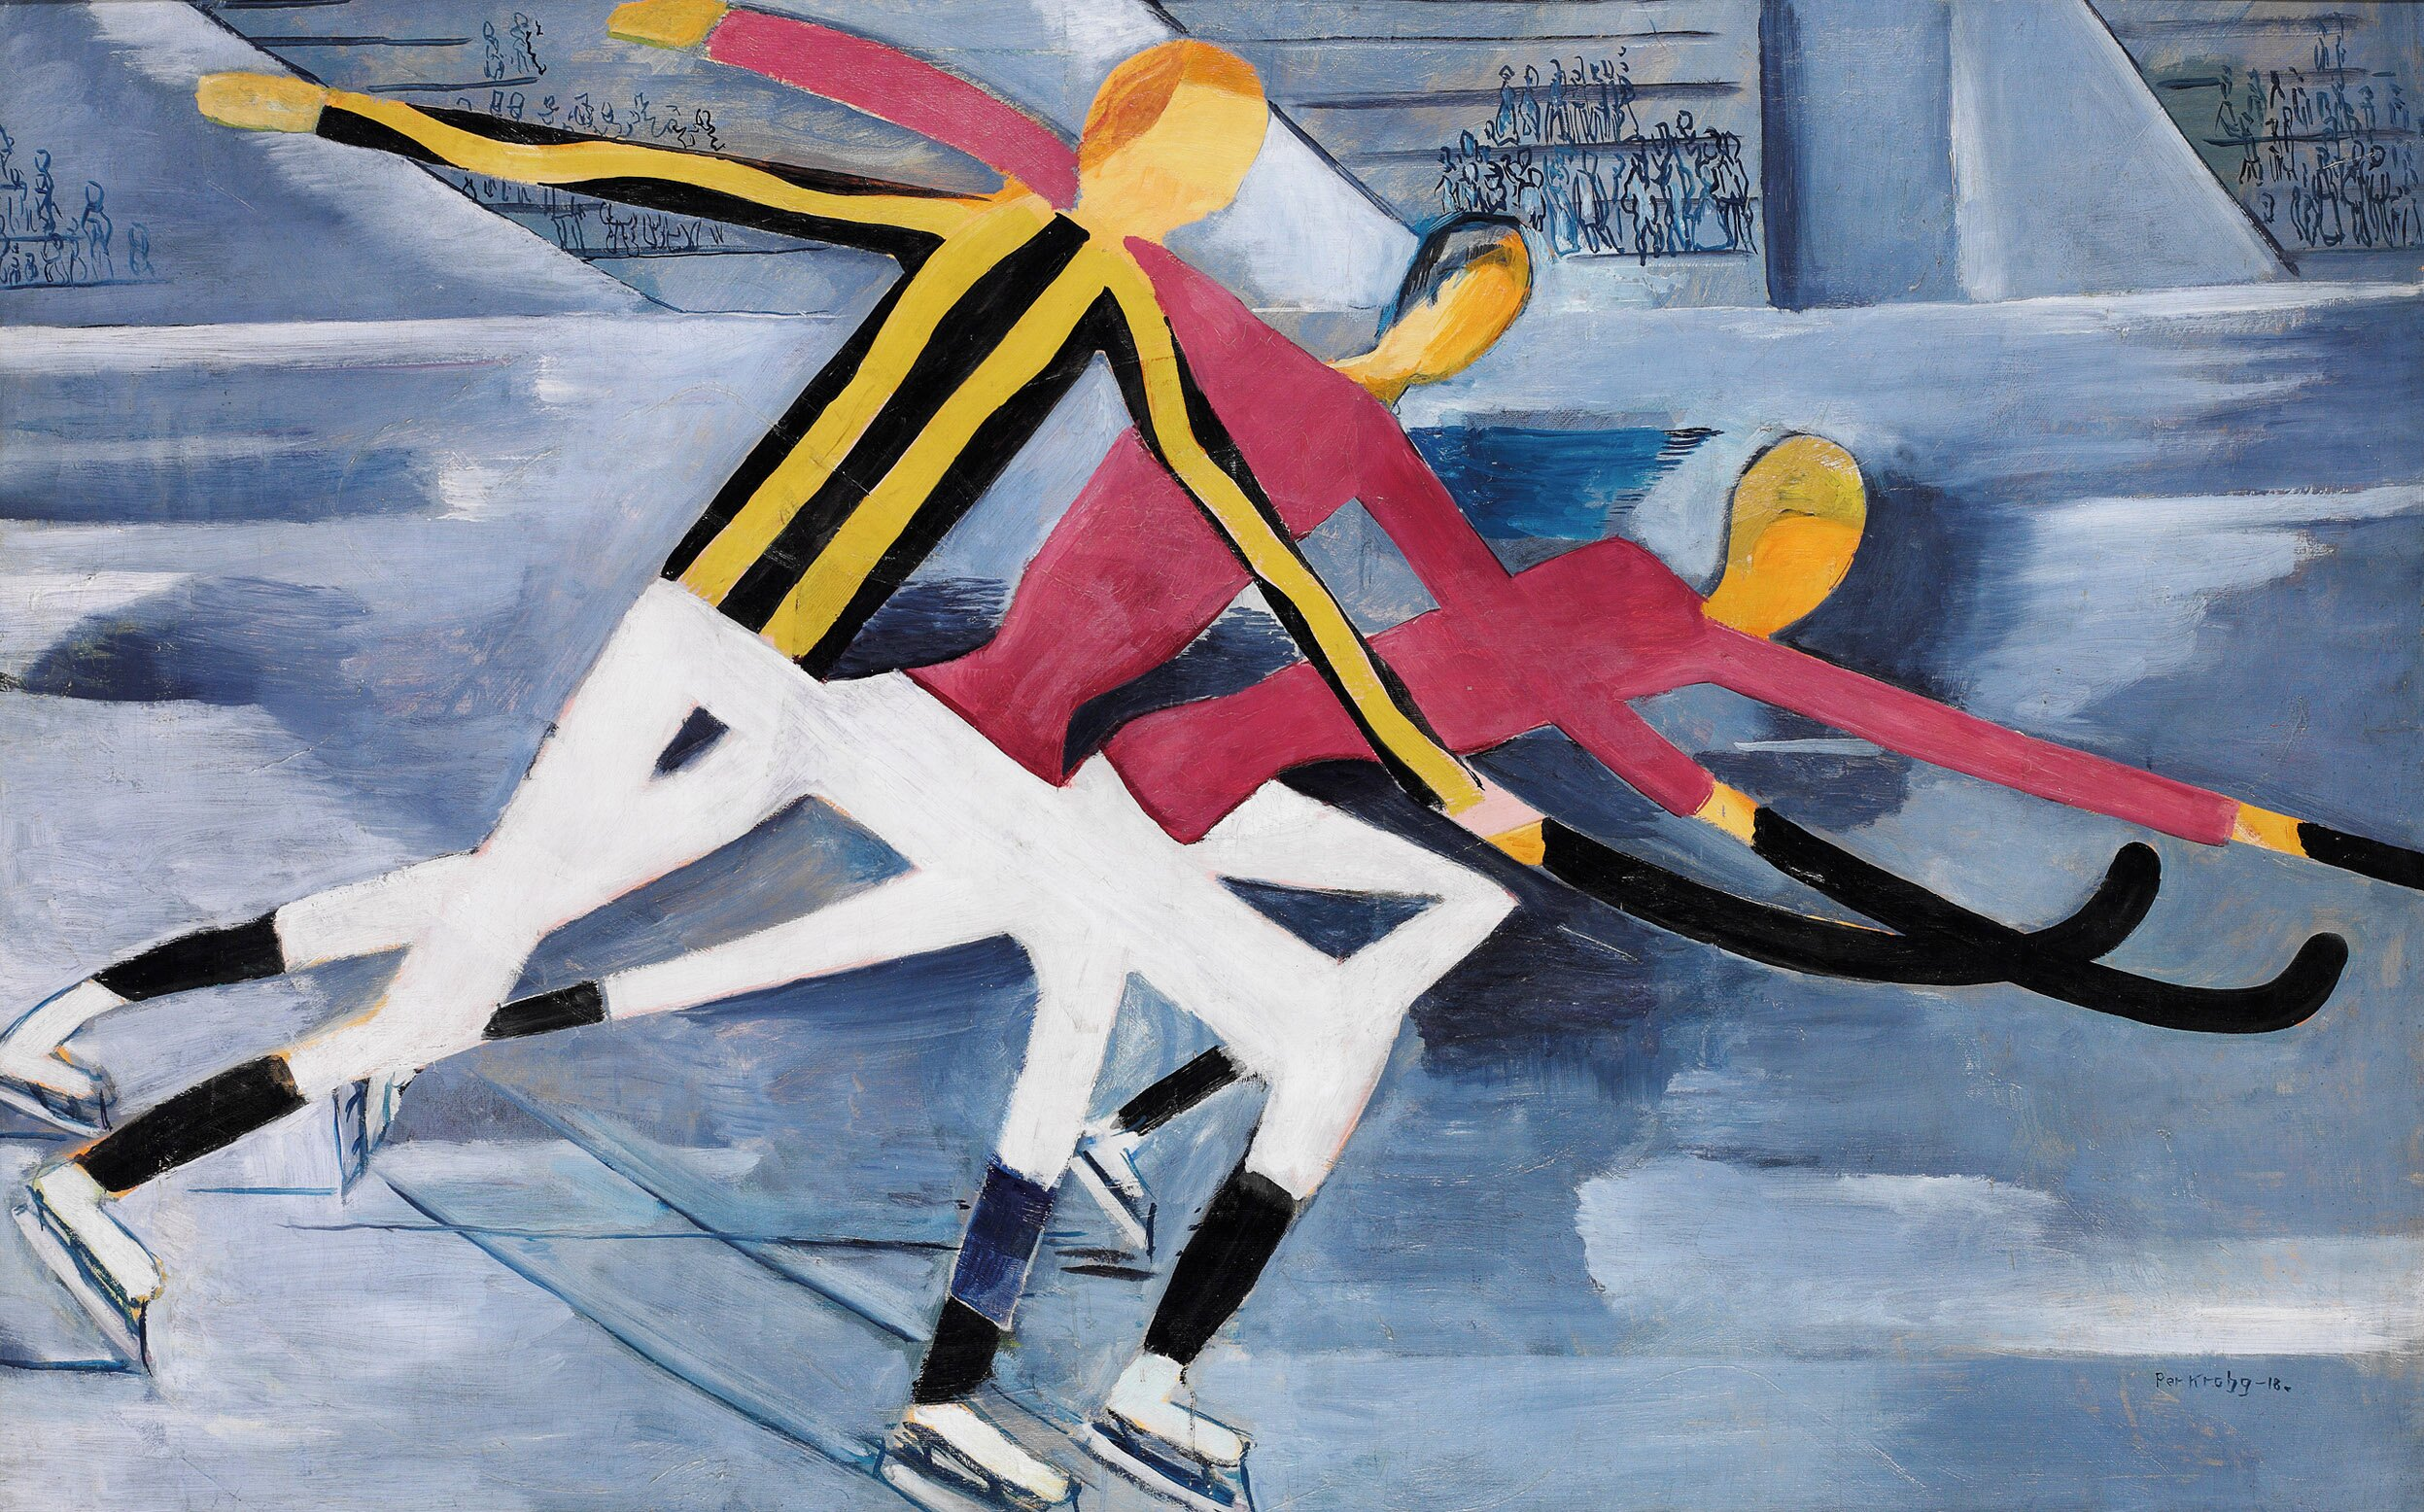 6131. per krohg, hockey 1918